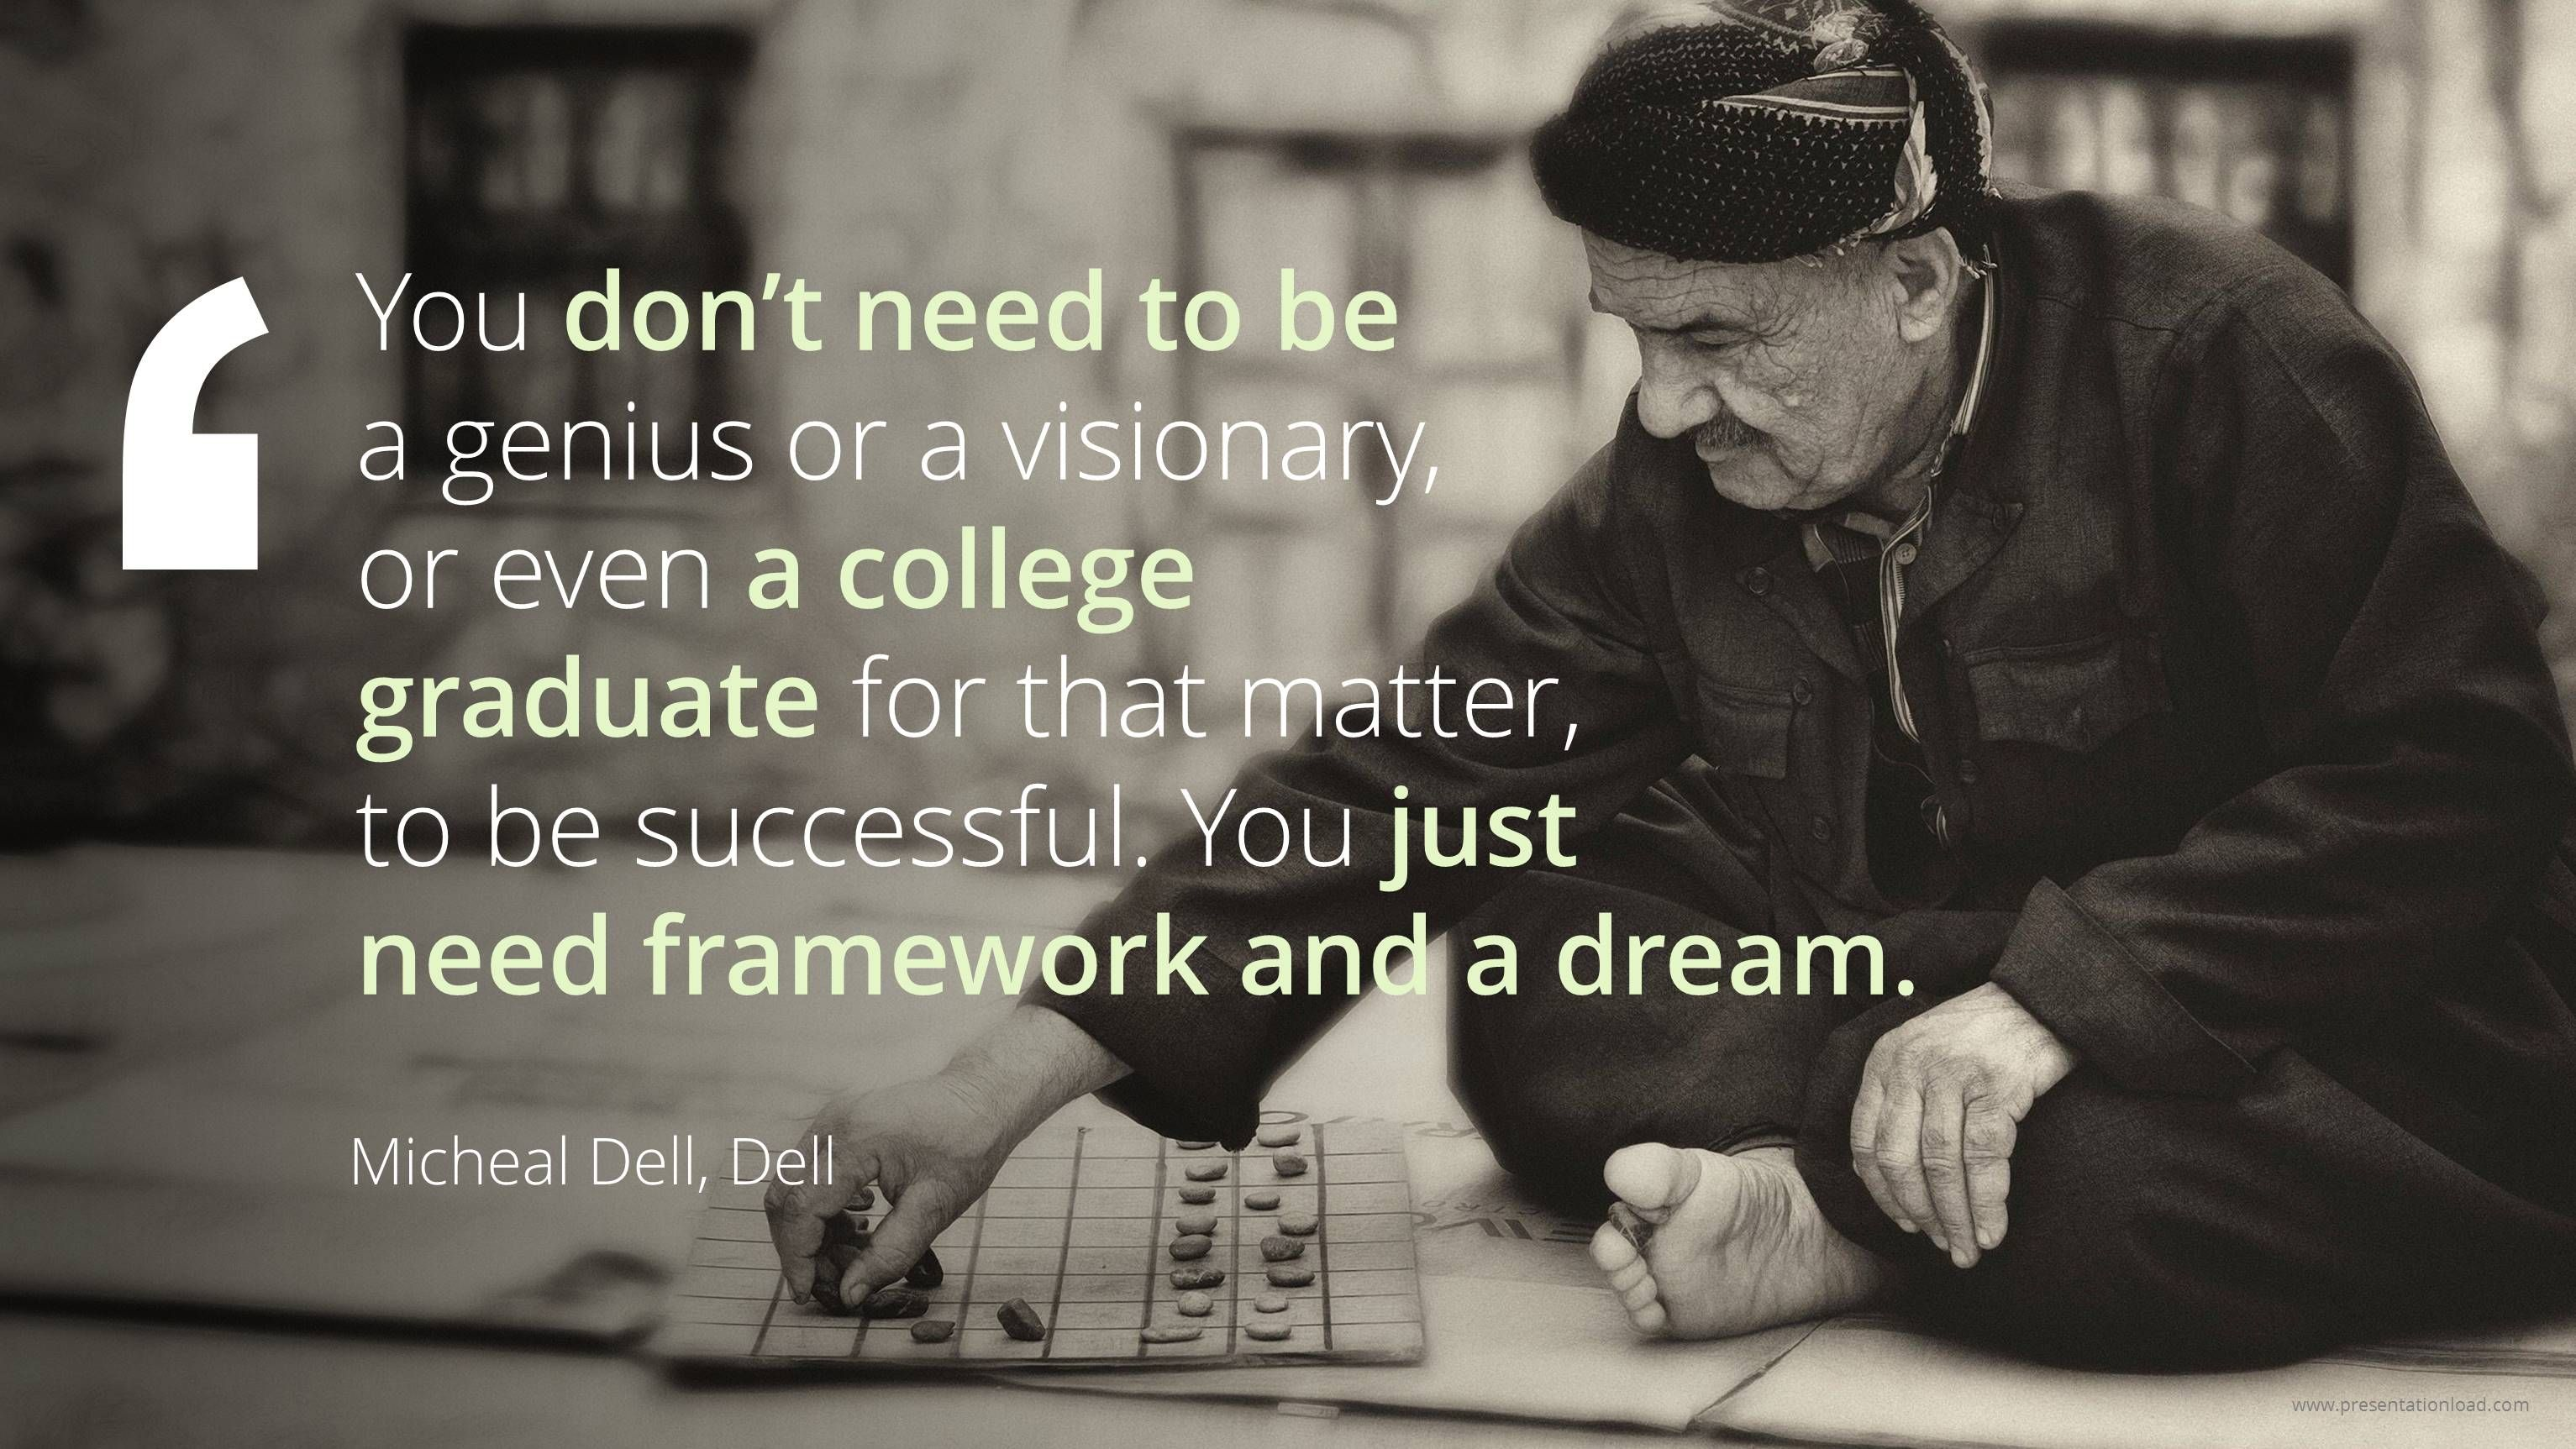 You Dont Need To Be A Genius Or Visionary Even College Graduate For That Matter Successful Just Framework And Dream